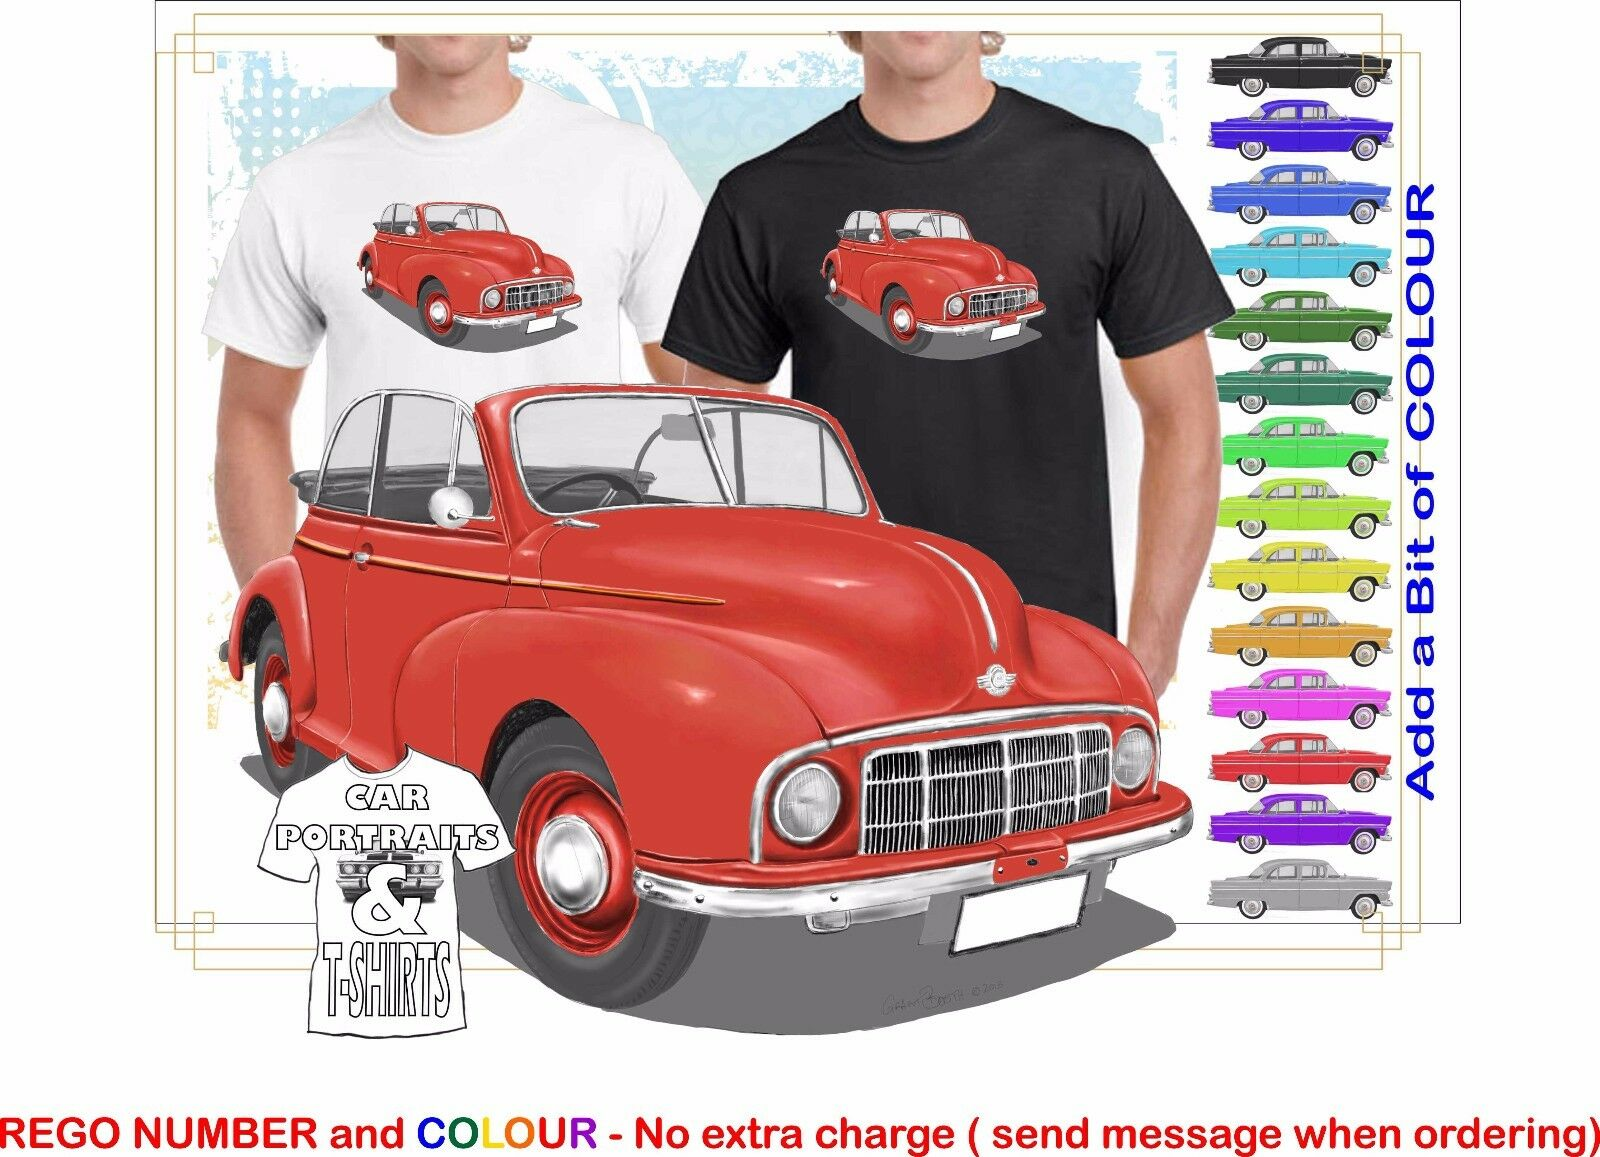 CLASSIC 48-52 MORRIS MINOR CONgreenIBLE ILLUSTRATED T-SHIRT MUSCLE RETRO CAR